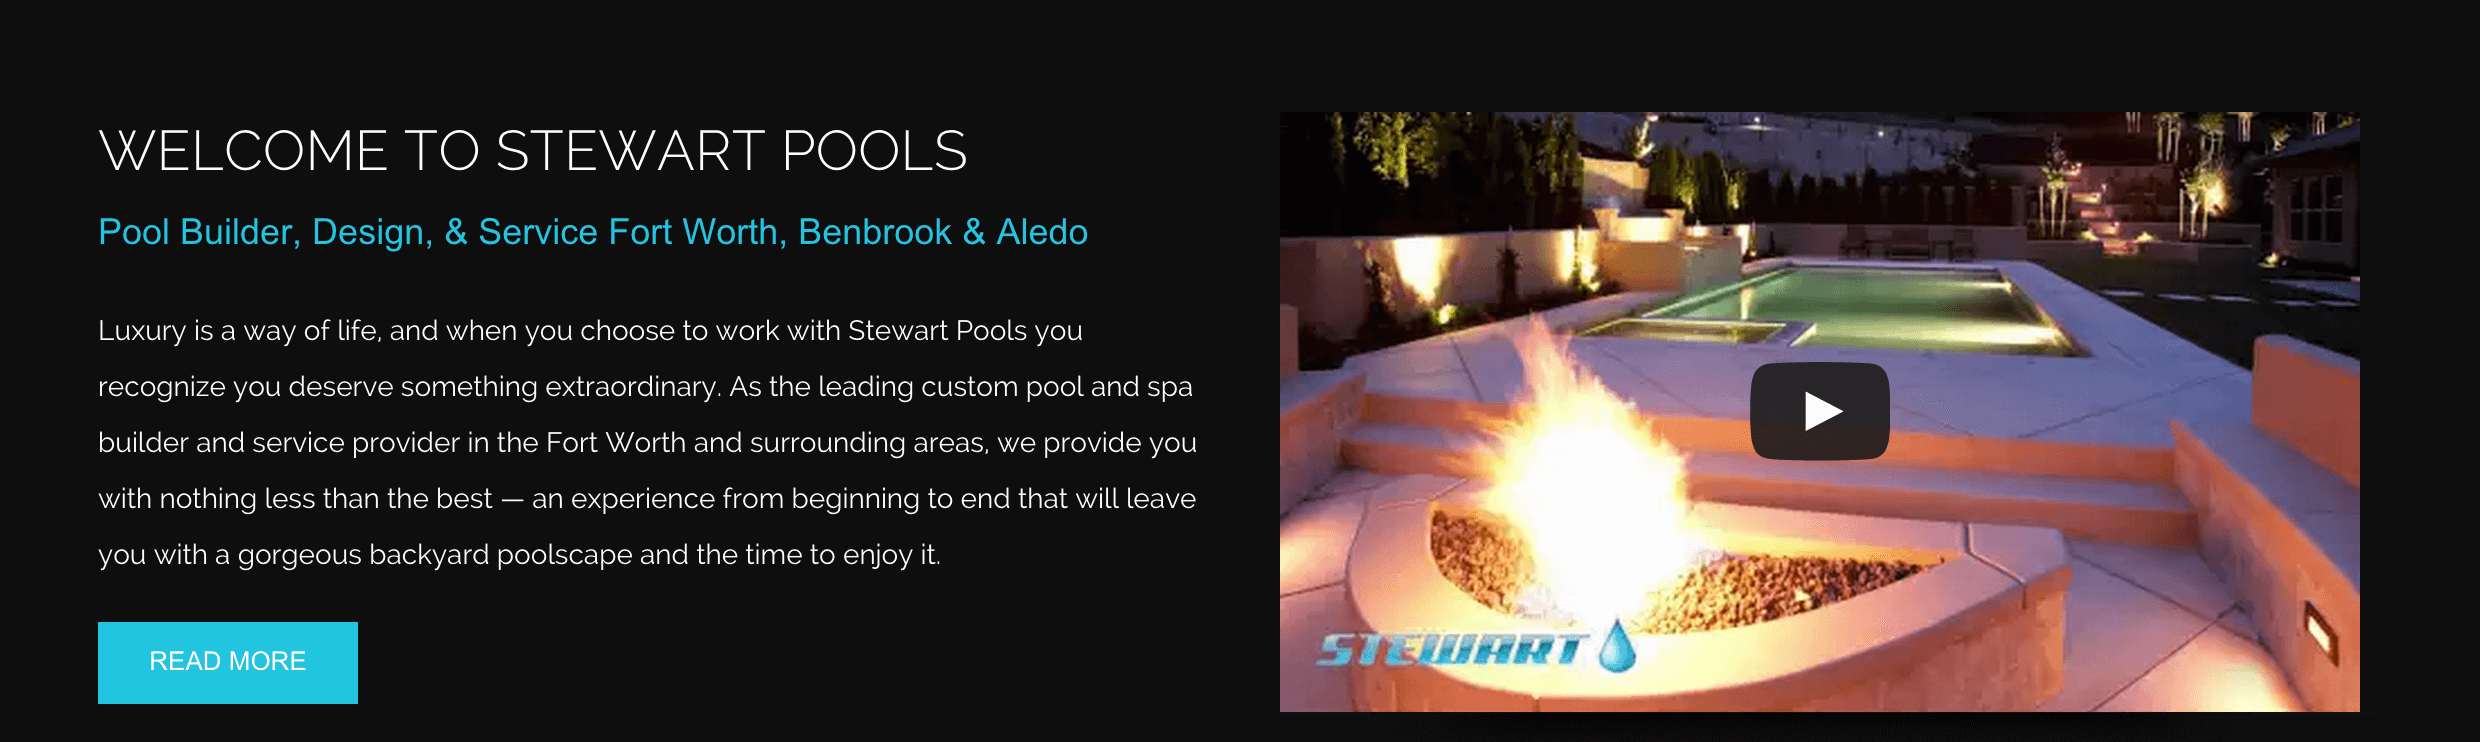 Pool Marketing Site Client Profile: Stewart Pools | Pool Marketing Site Digital Media and Inbound Marketing Agency Houston Texas